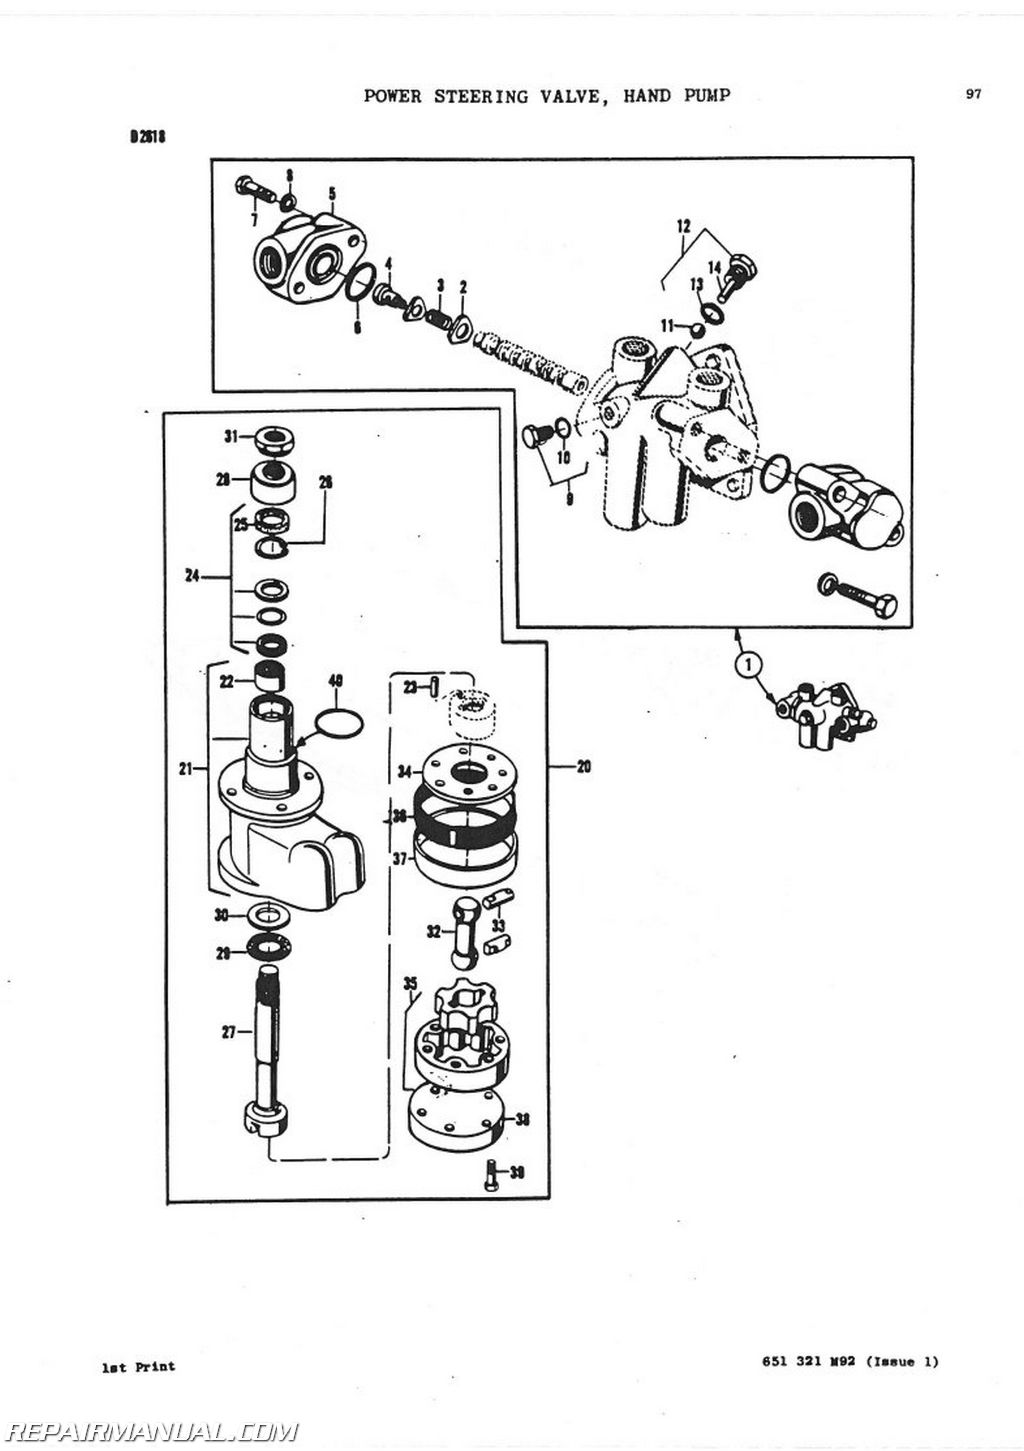 Diagrams Wiring Massey Ferguson 50 Parts Diagram